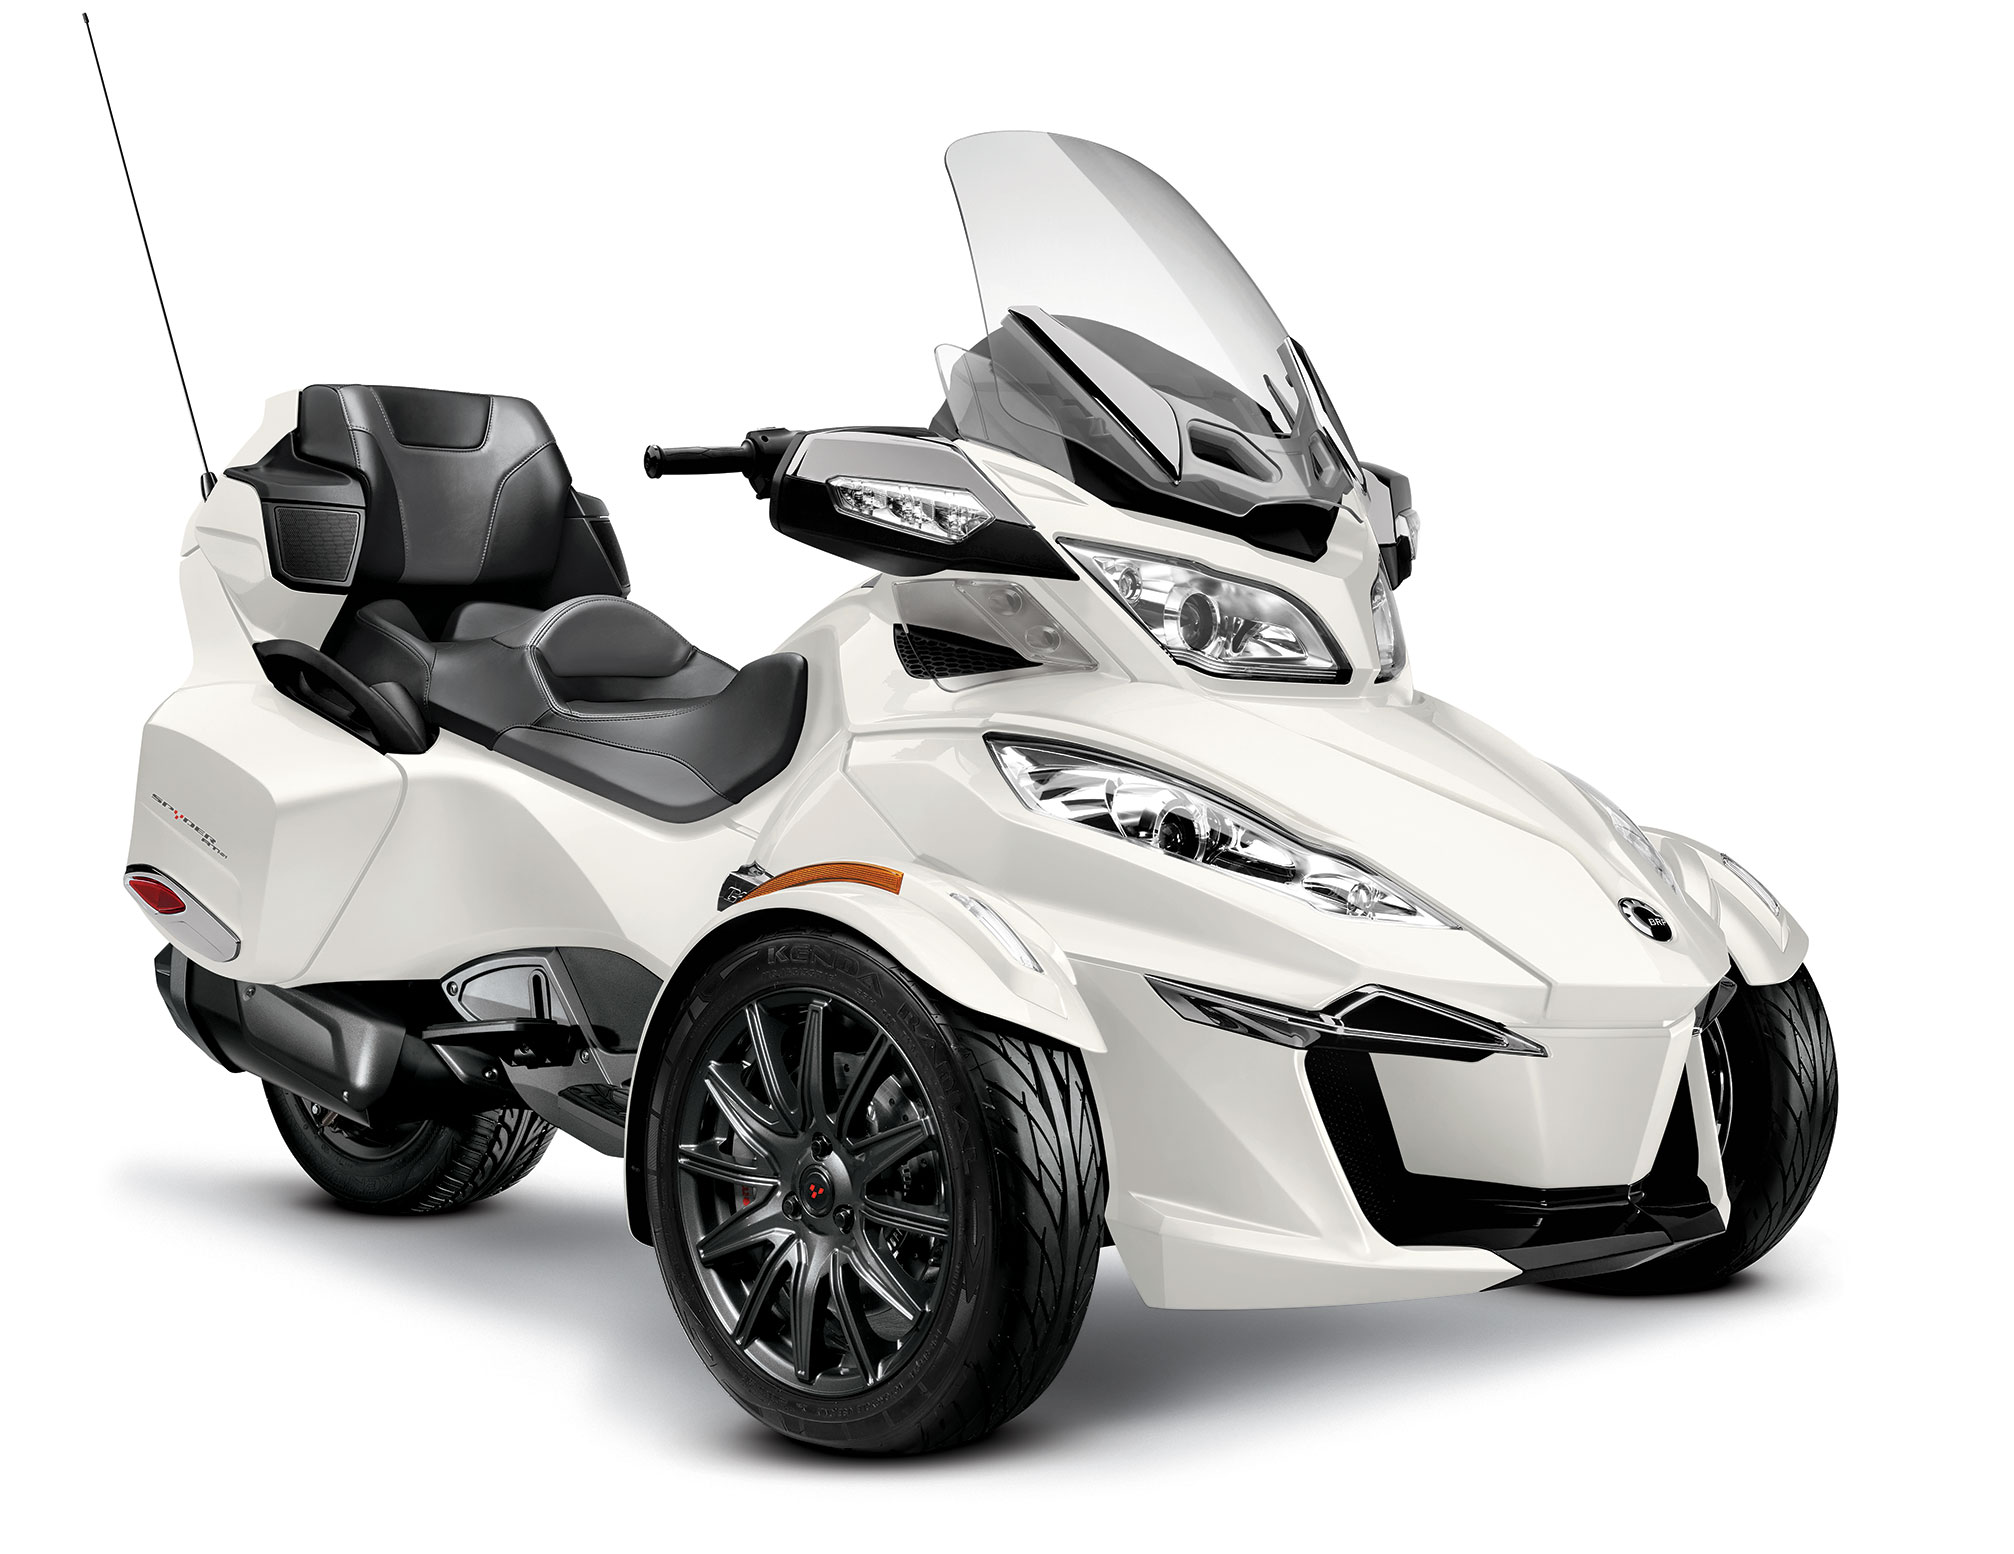 2014 Can-Am Spyder RS-S pic 13 - onlymotorbikes.com